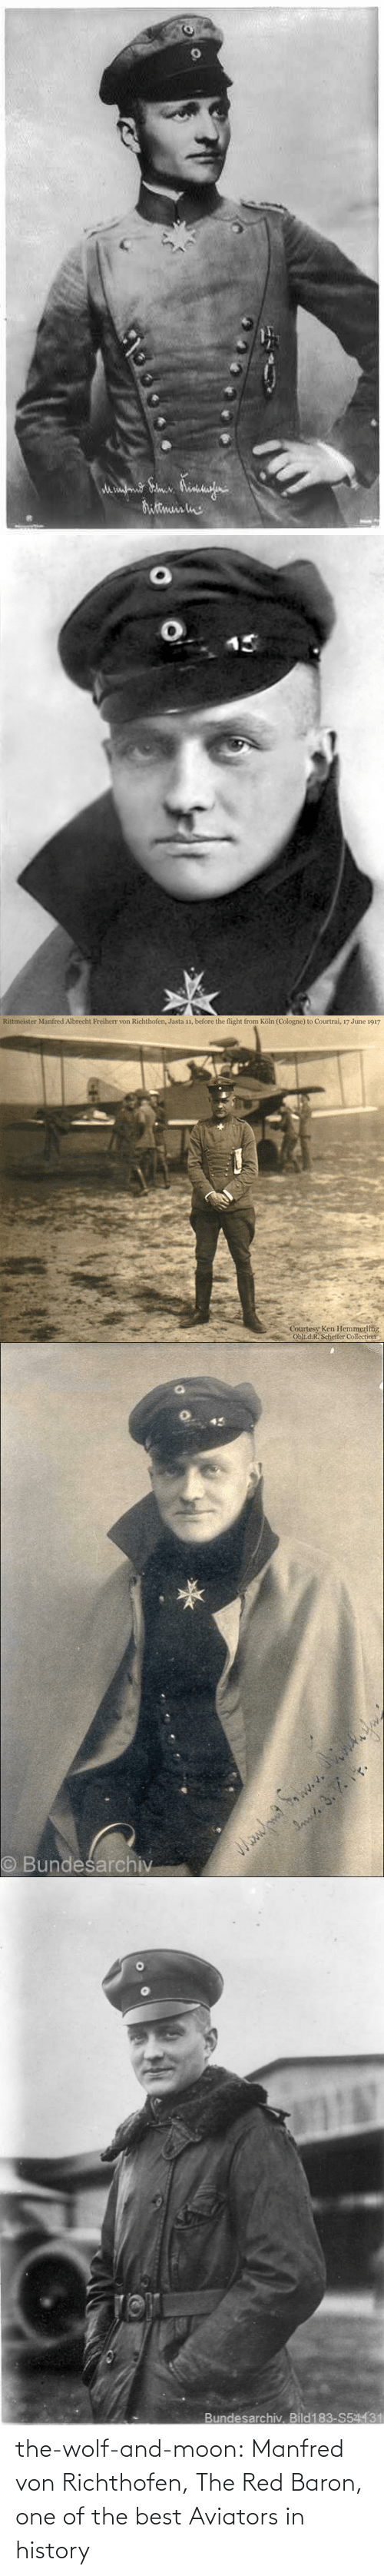 The Red: the-wolf-and-moon:  Manfred von Richthofen, The Red Baron, one of the best Aviators in history